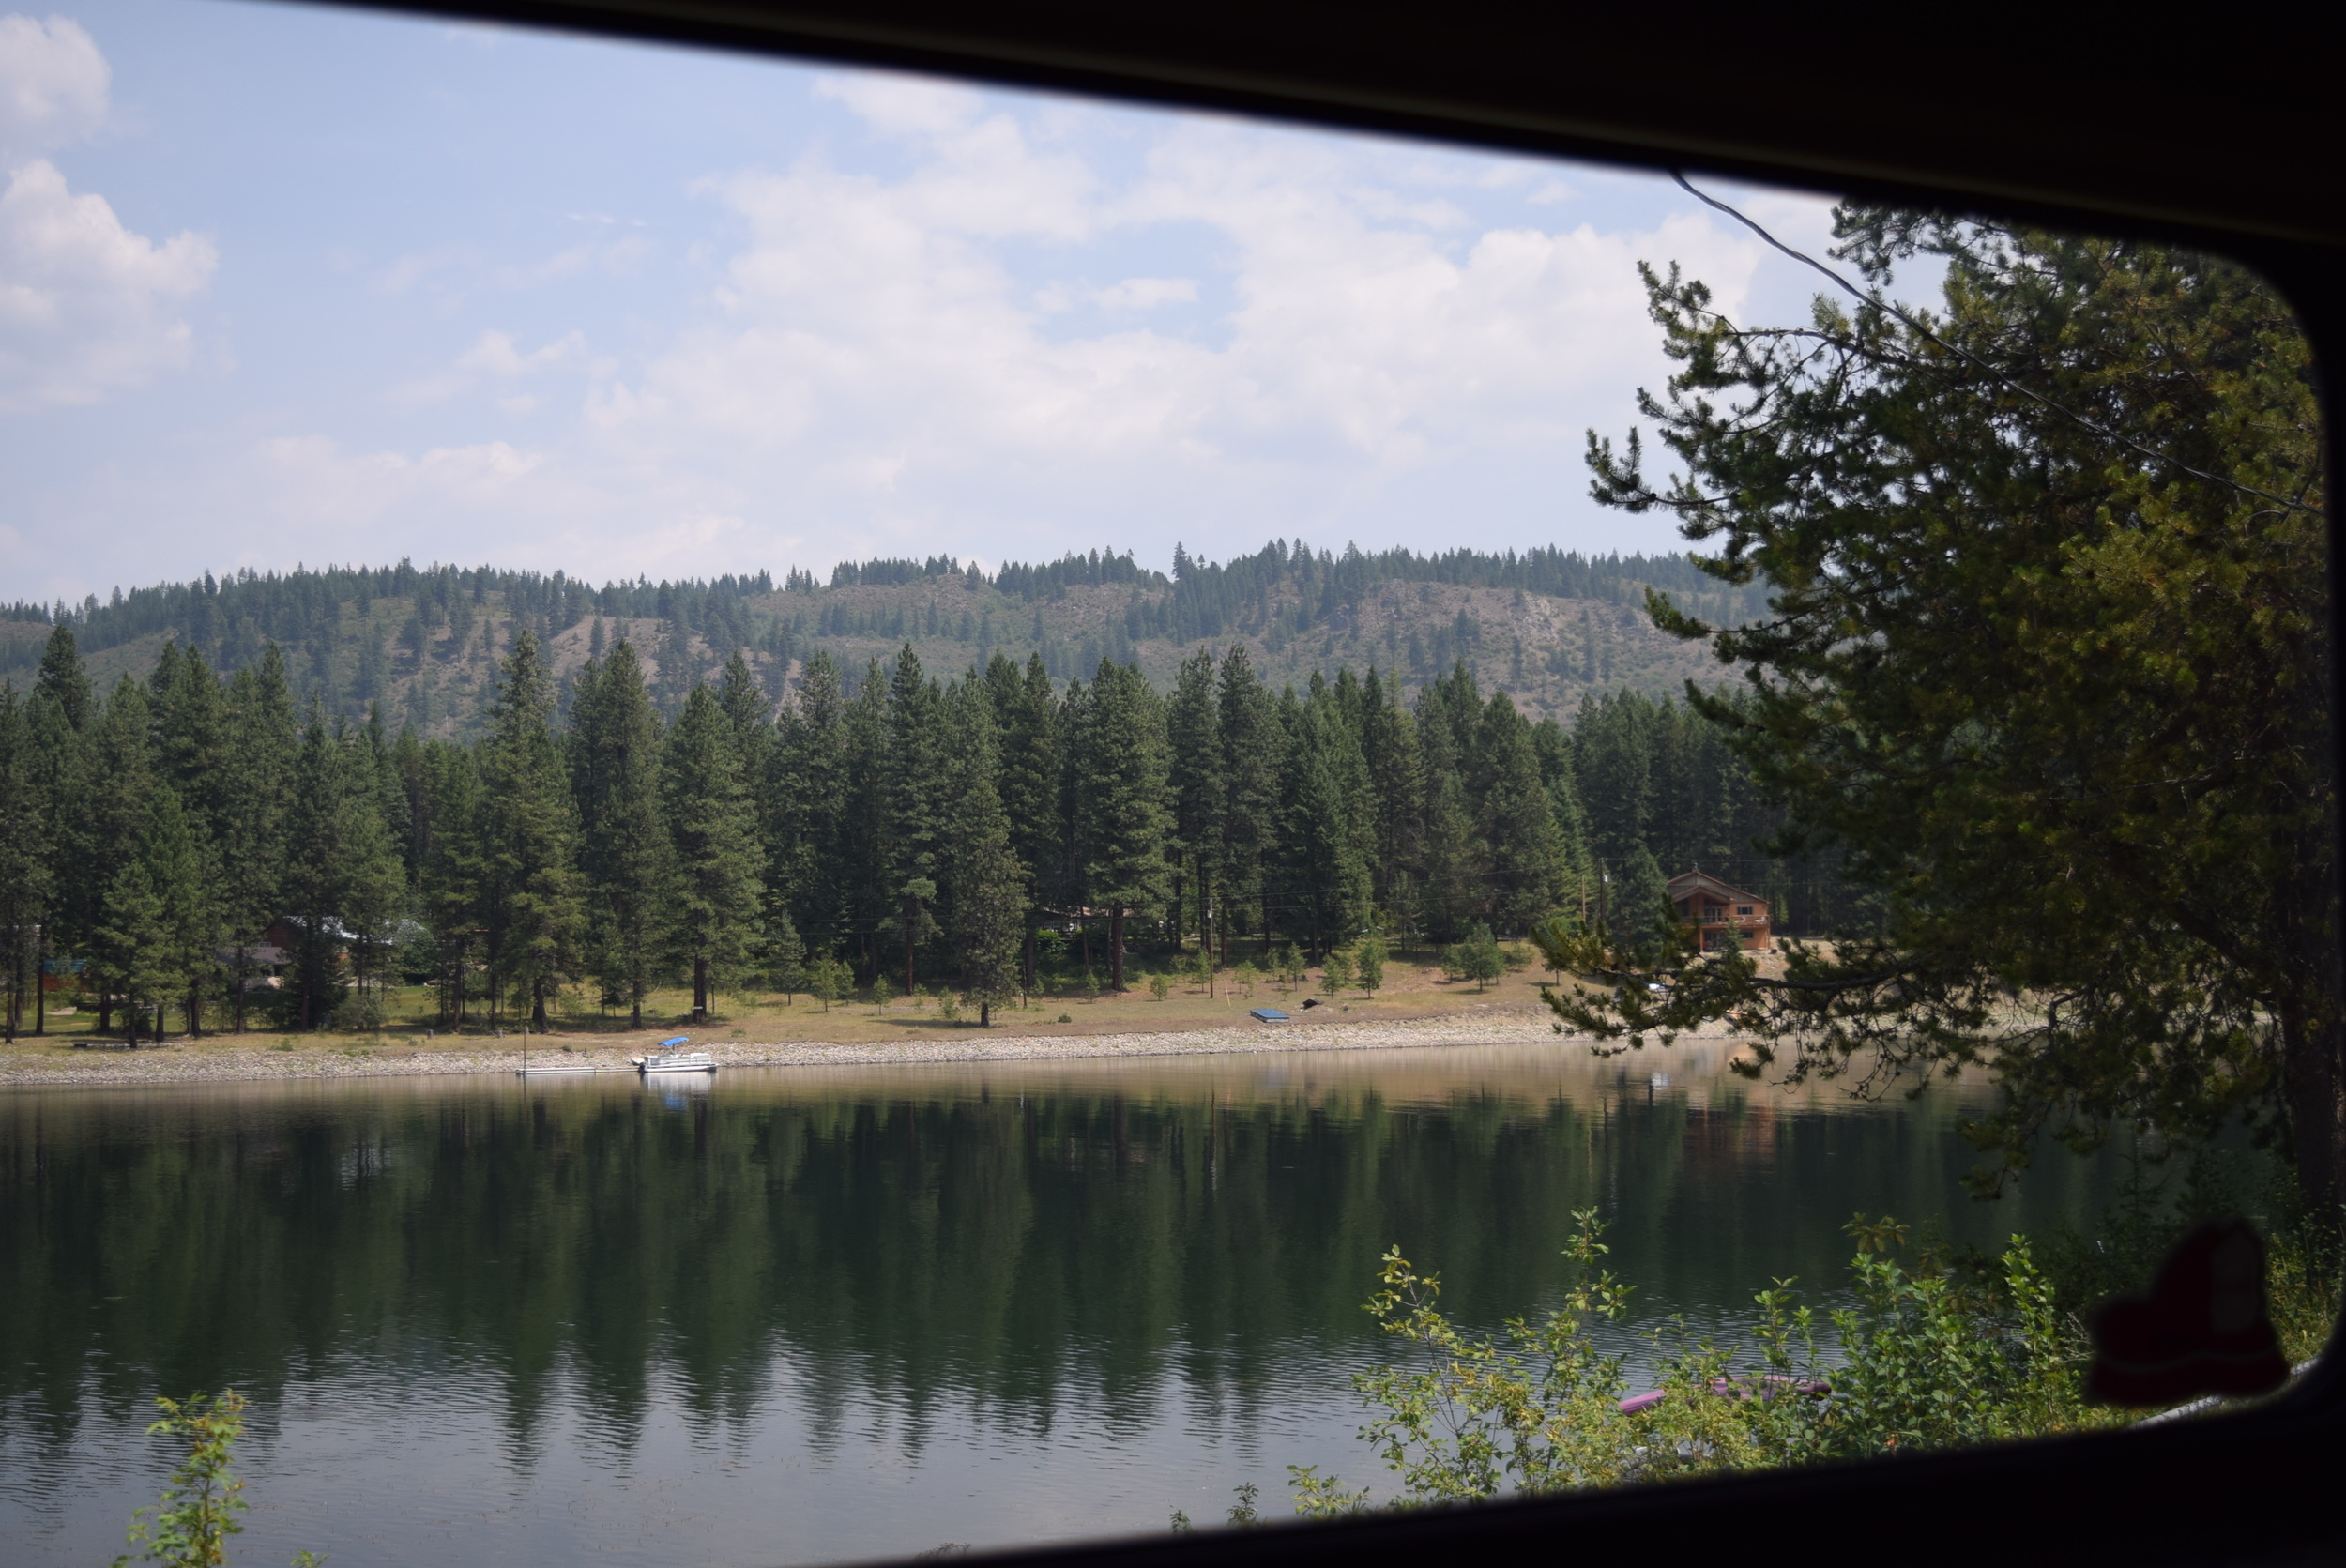 The view from the back window. Pend Oreille River.